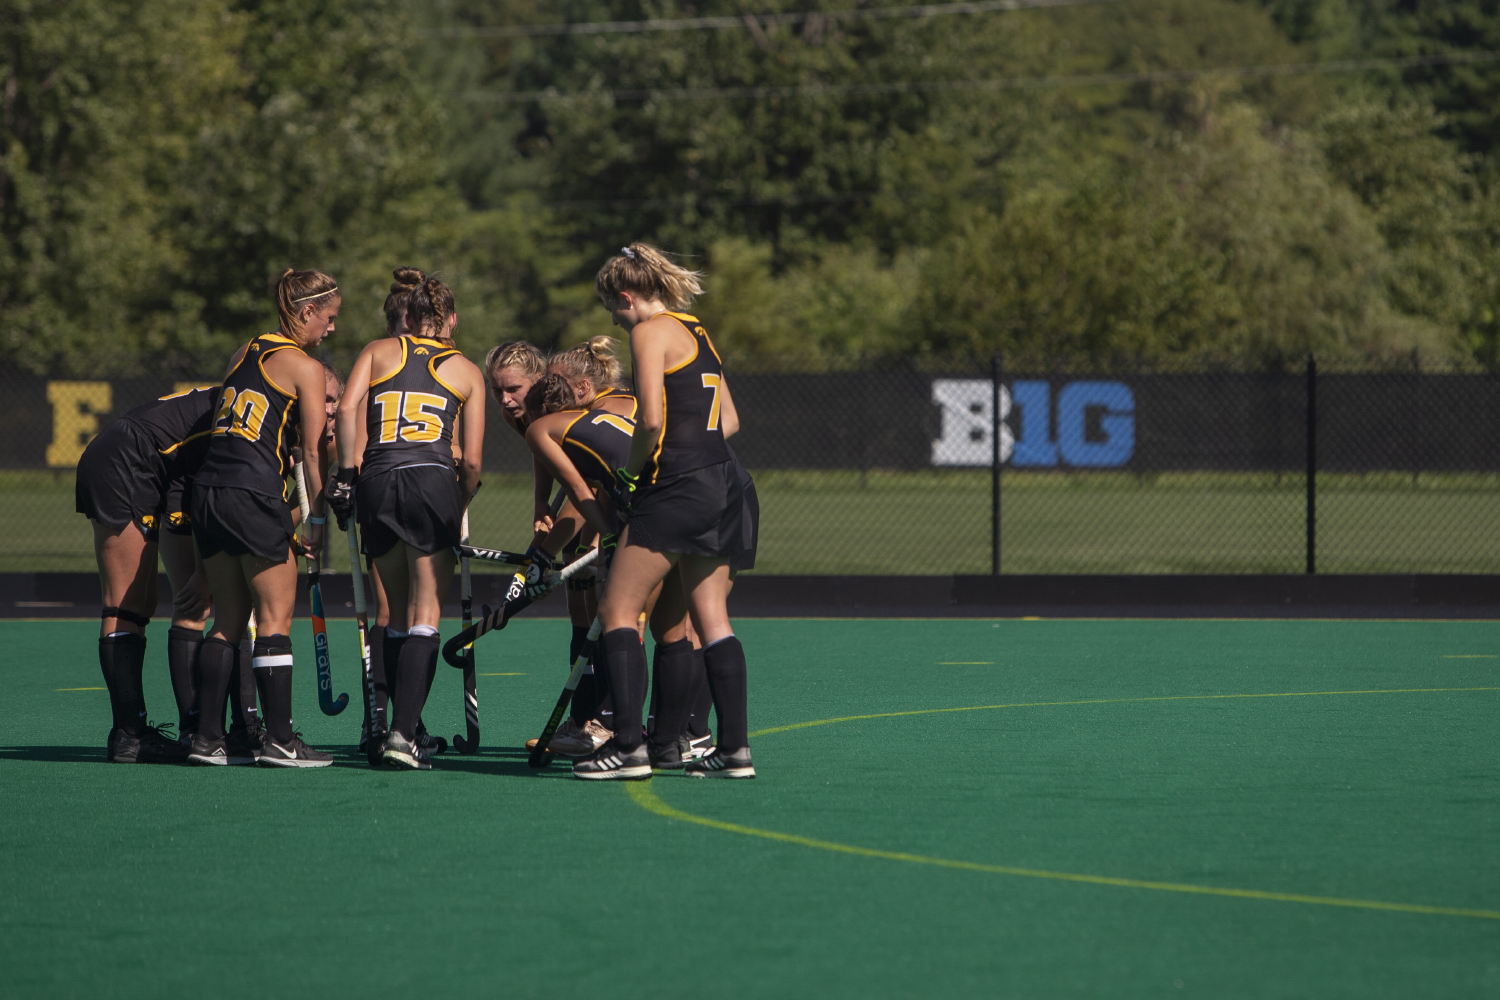 Iowa+players+meet+to+discuss+before+a+corner+shot+during+a+field+hockey+game+between+Iowa+and+Central+Michigan+at+Grant+Field+on+Friday%2C+September+6%2C+2019.+The+Hawkeyes+defeated+the+Chippewas%2C+11-0.